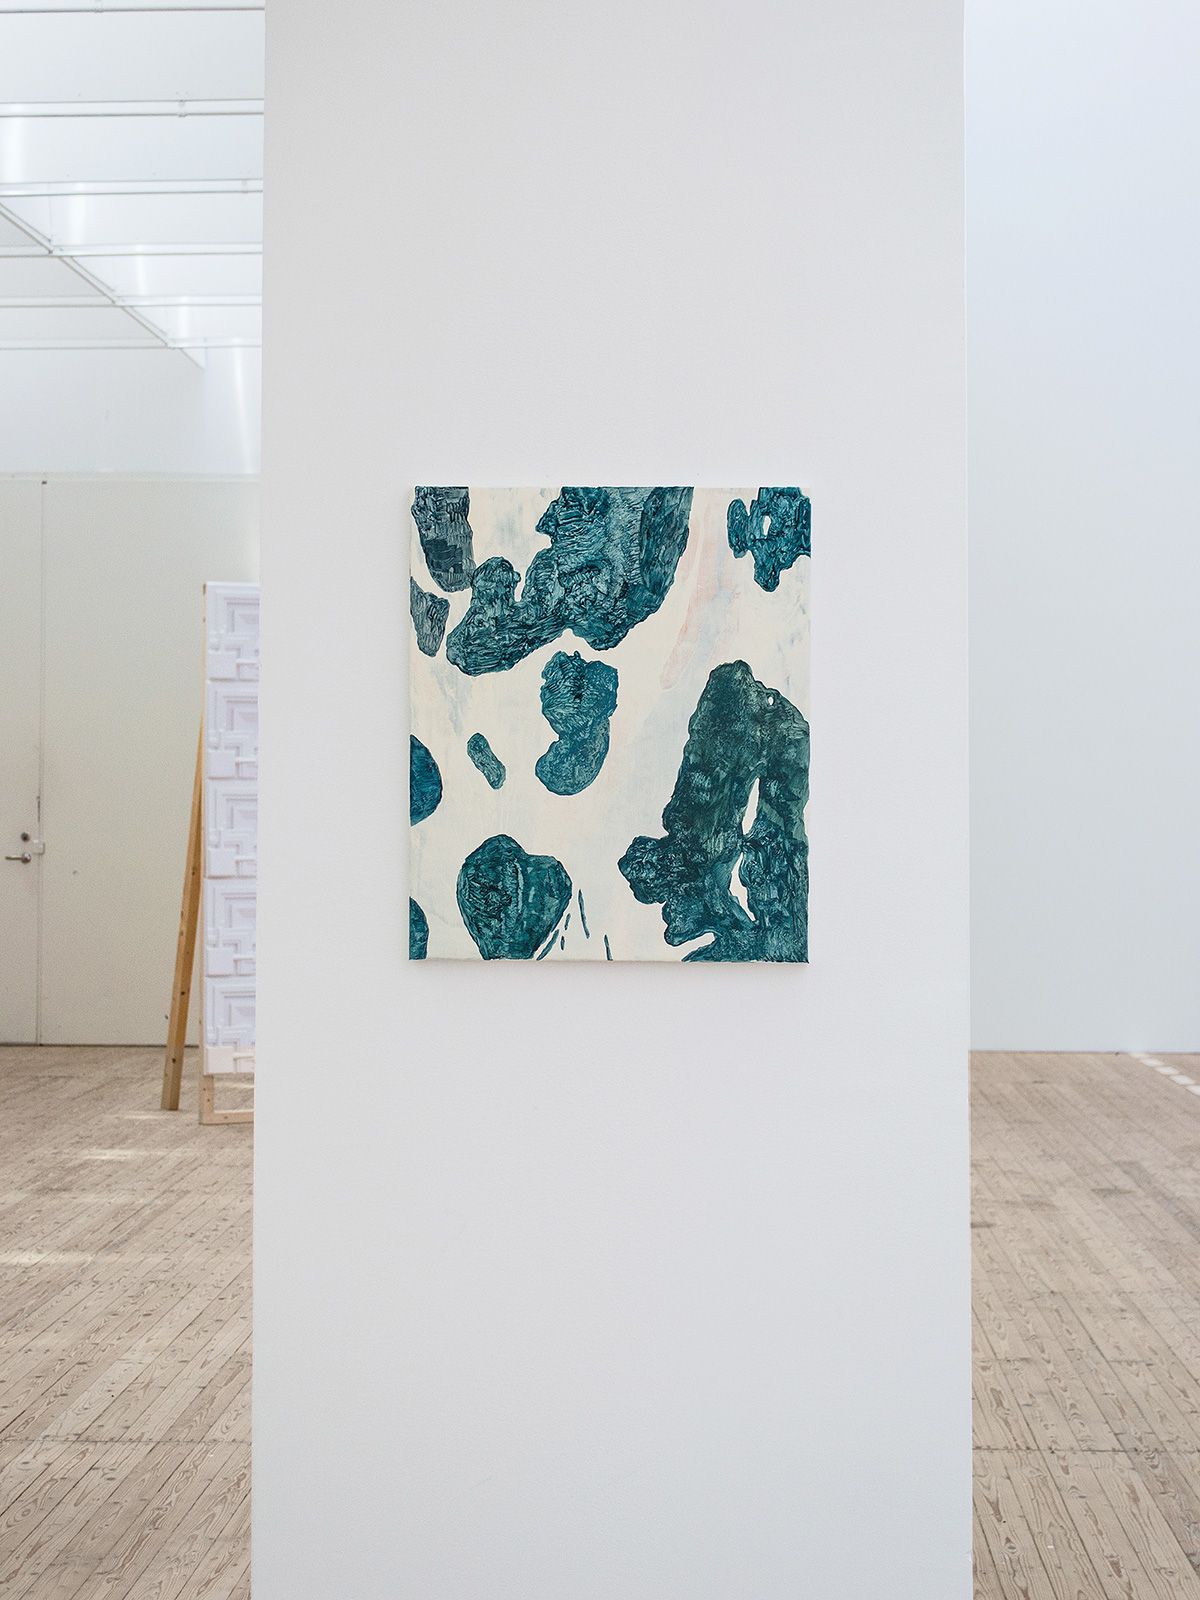 Copycat Underdog (2013), at Malmö Konsthall, Malmö, Sweden. Installation view. Bark III 45 x 53 cm, acrylic on canvas.